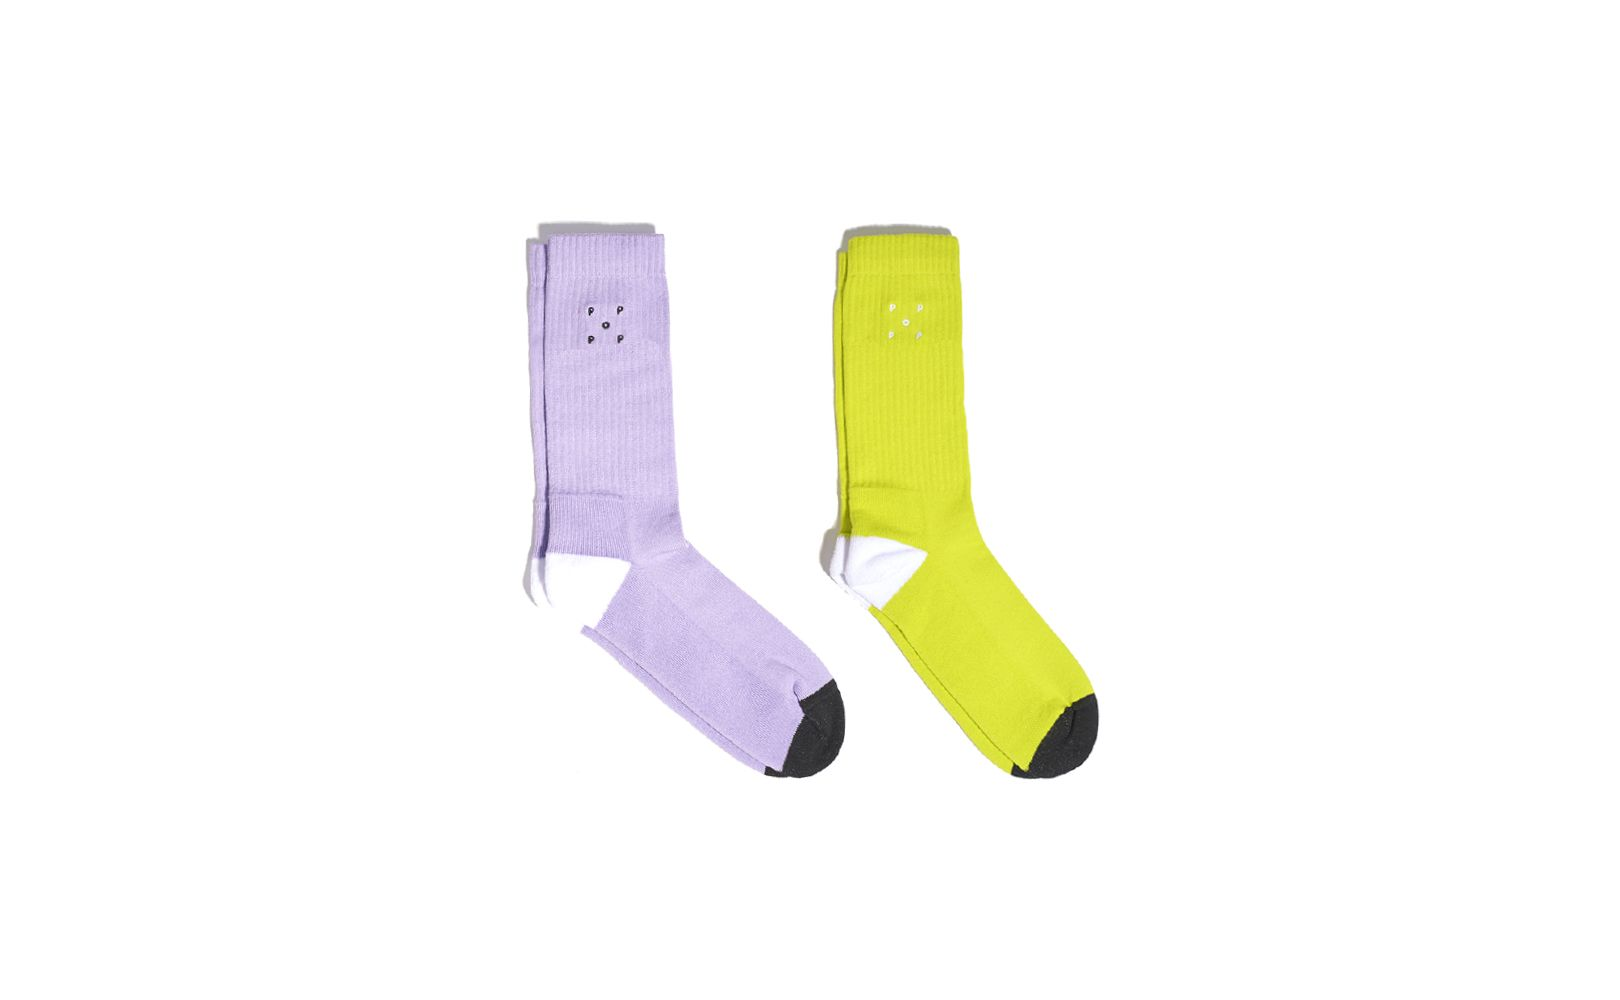 pop-trading-company-aw17-product-sportswear-socks-violet-electric-yellow